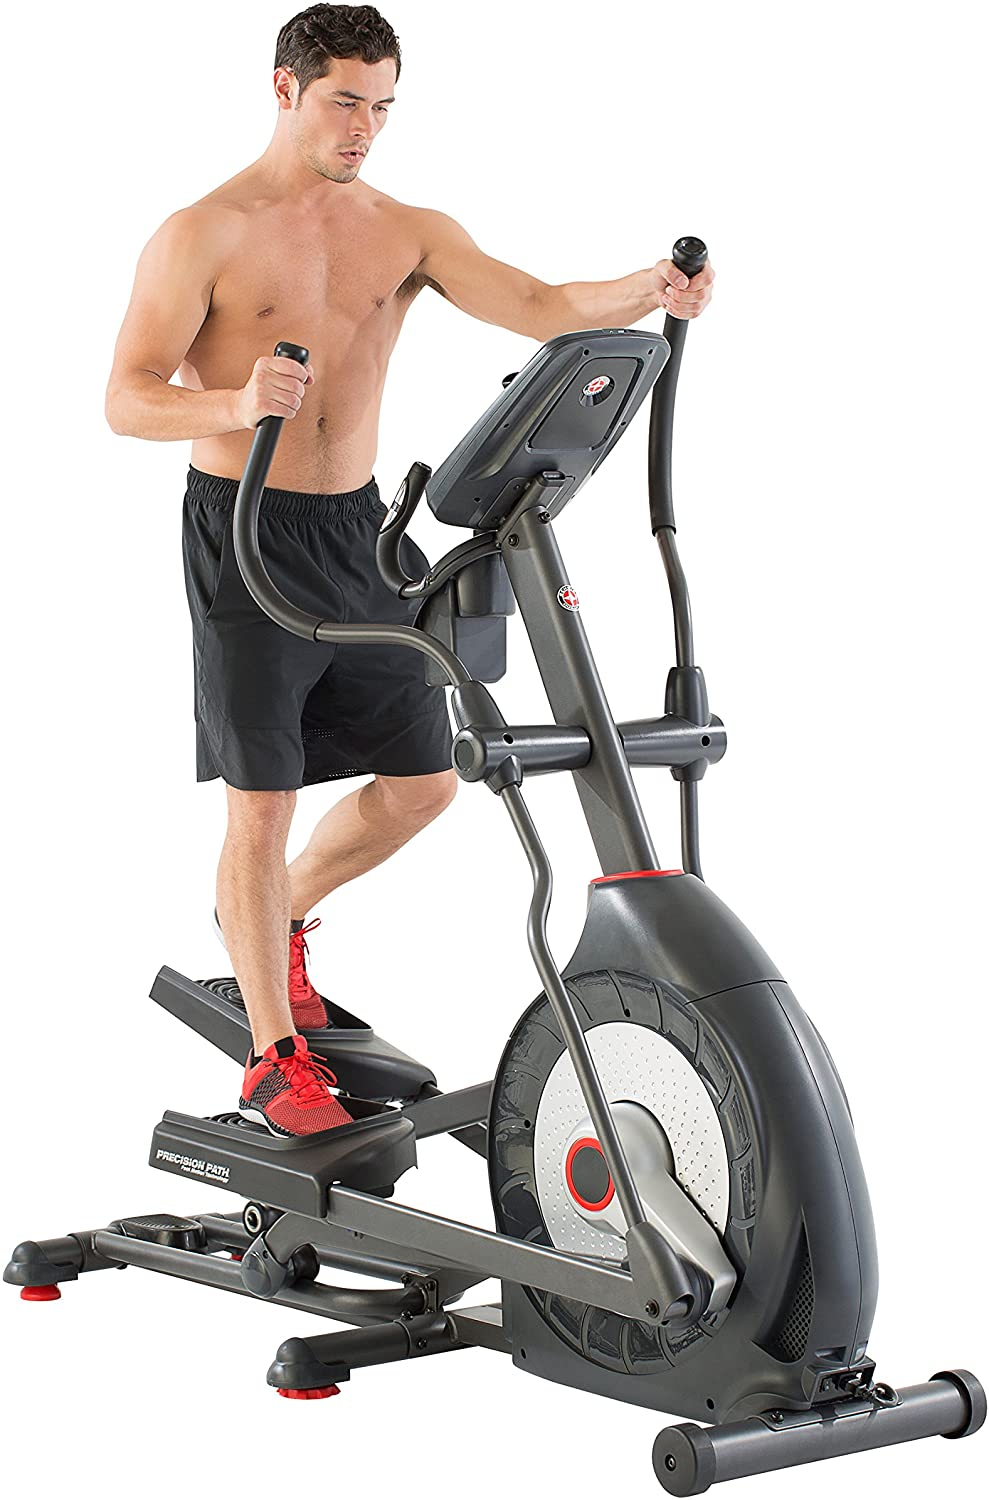 Best in home elliptical trainers